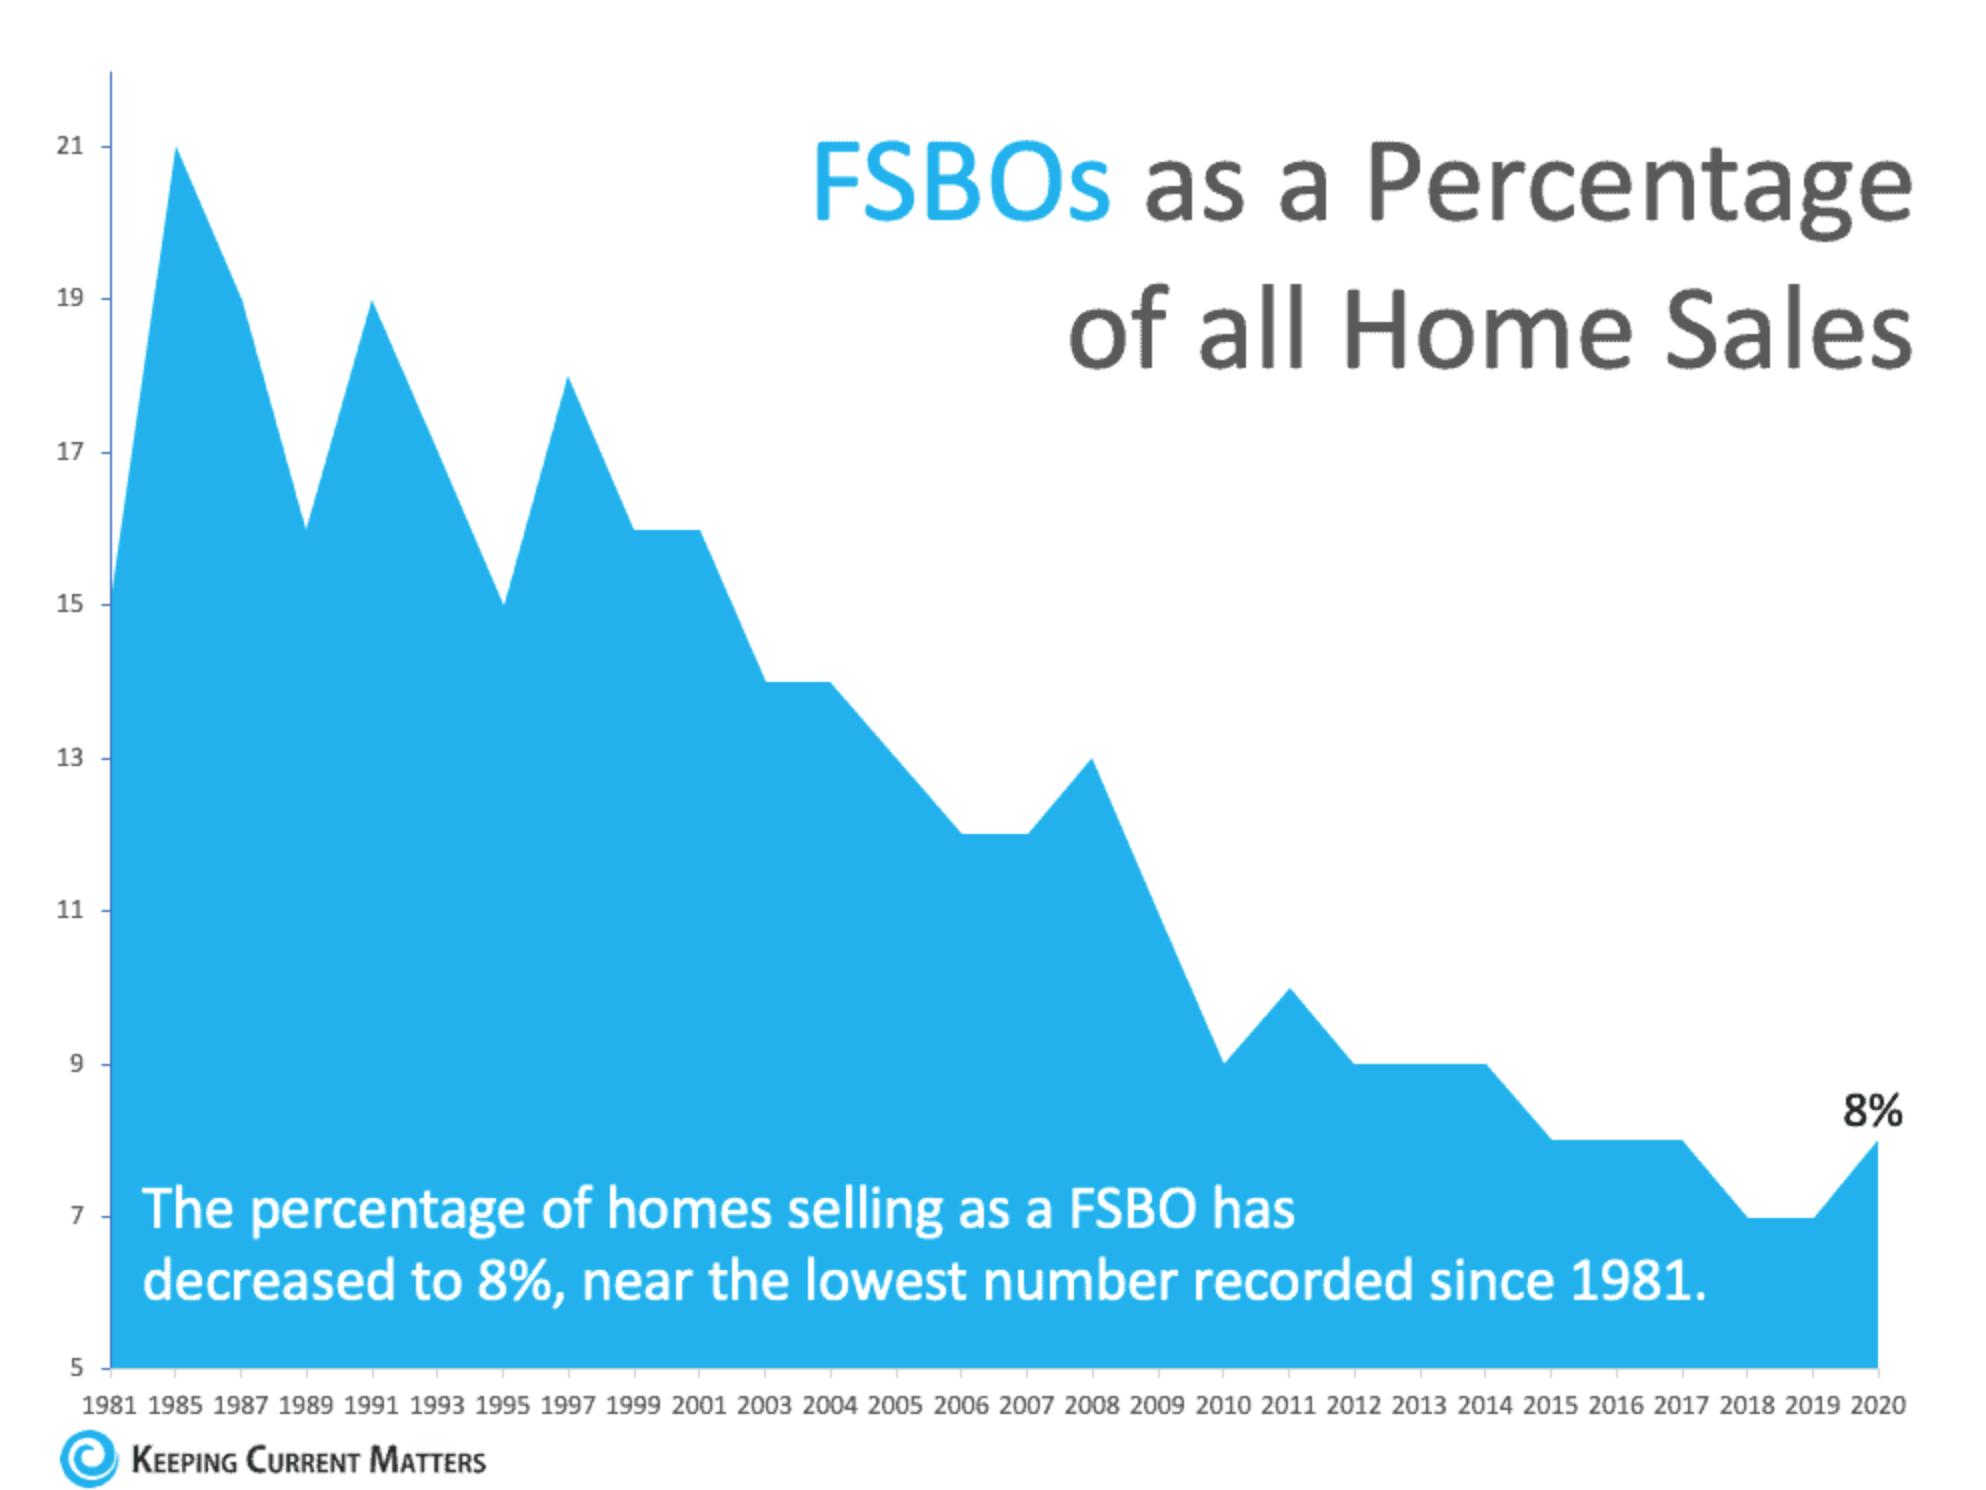 FSBOs as a percentage of all home sales